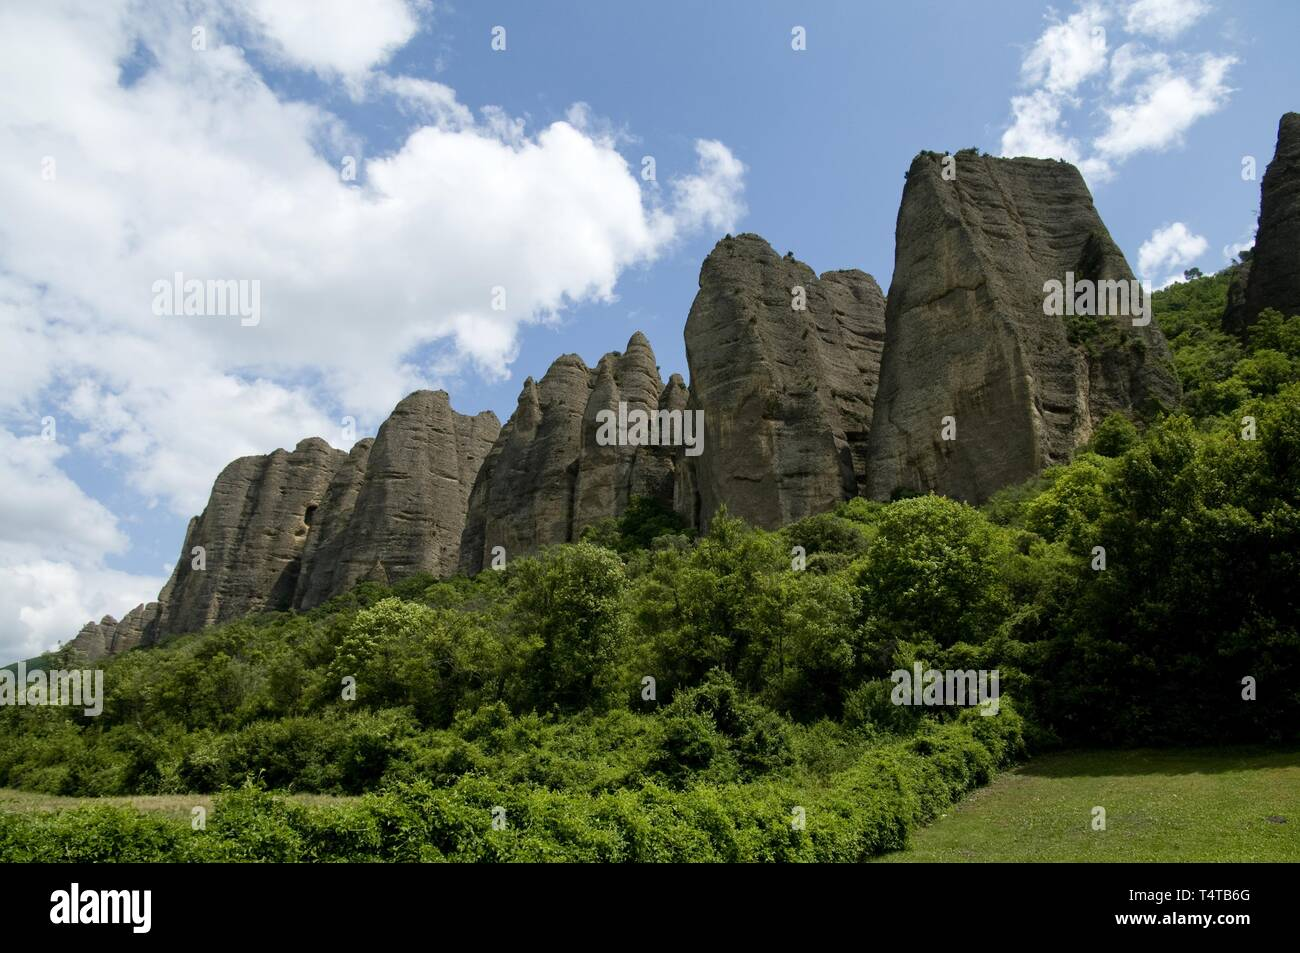 Rock Formation Penitents, Les Mées, Provence, France, Europe - Stock Image